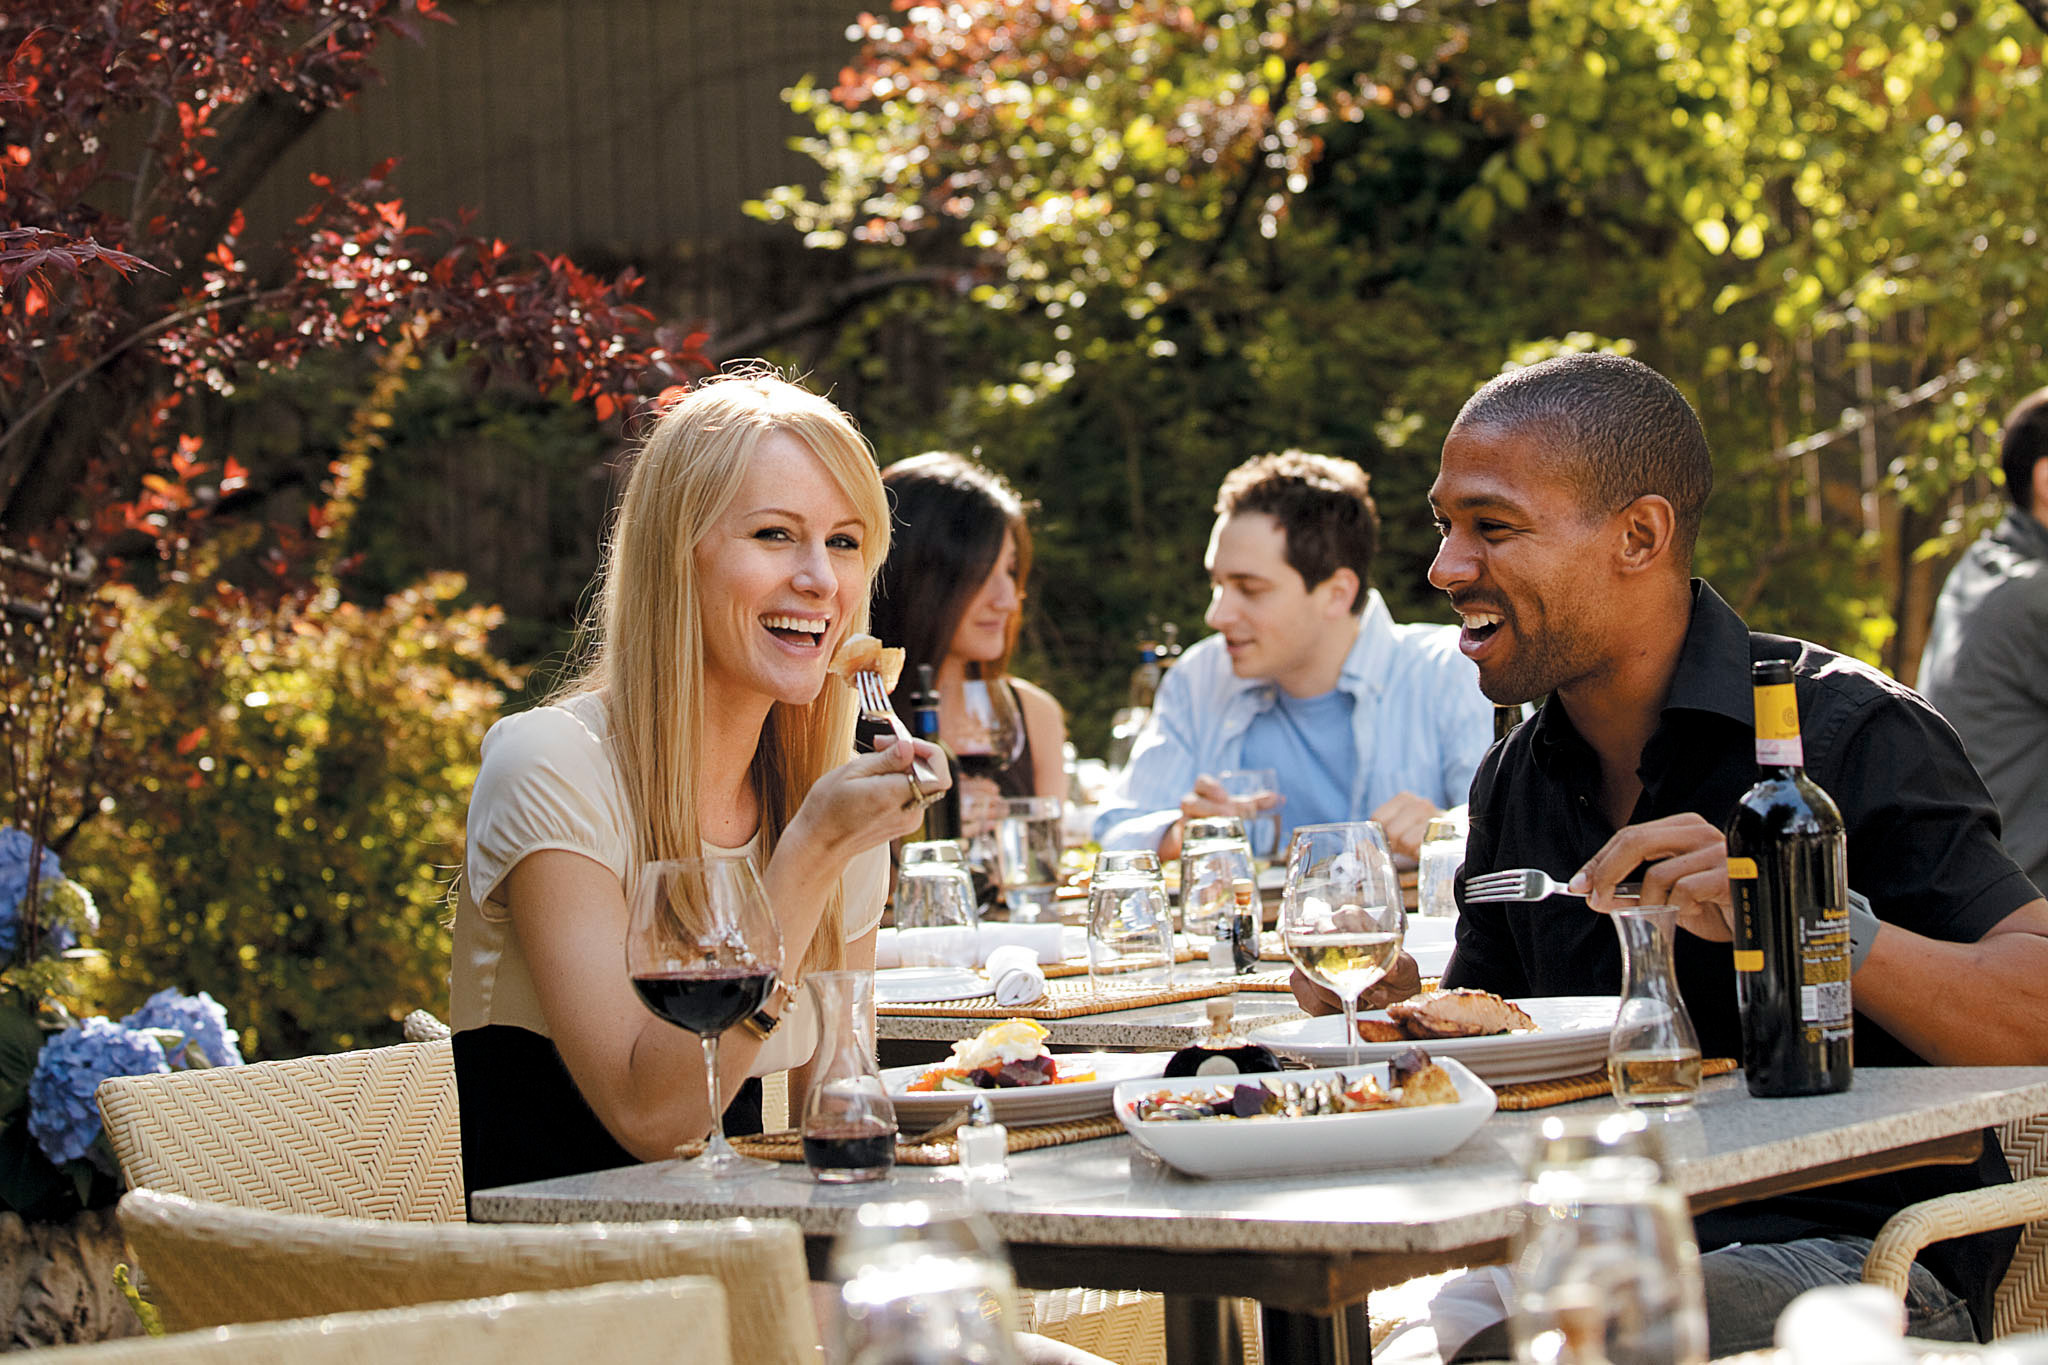 Best outdoor restaurants in Chicago